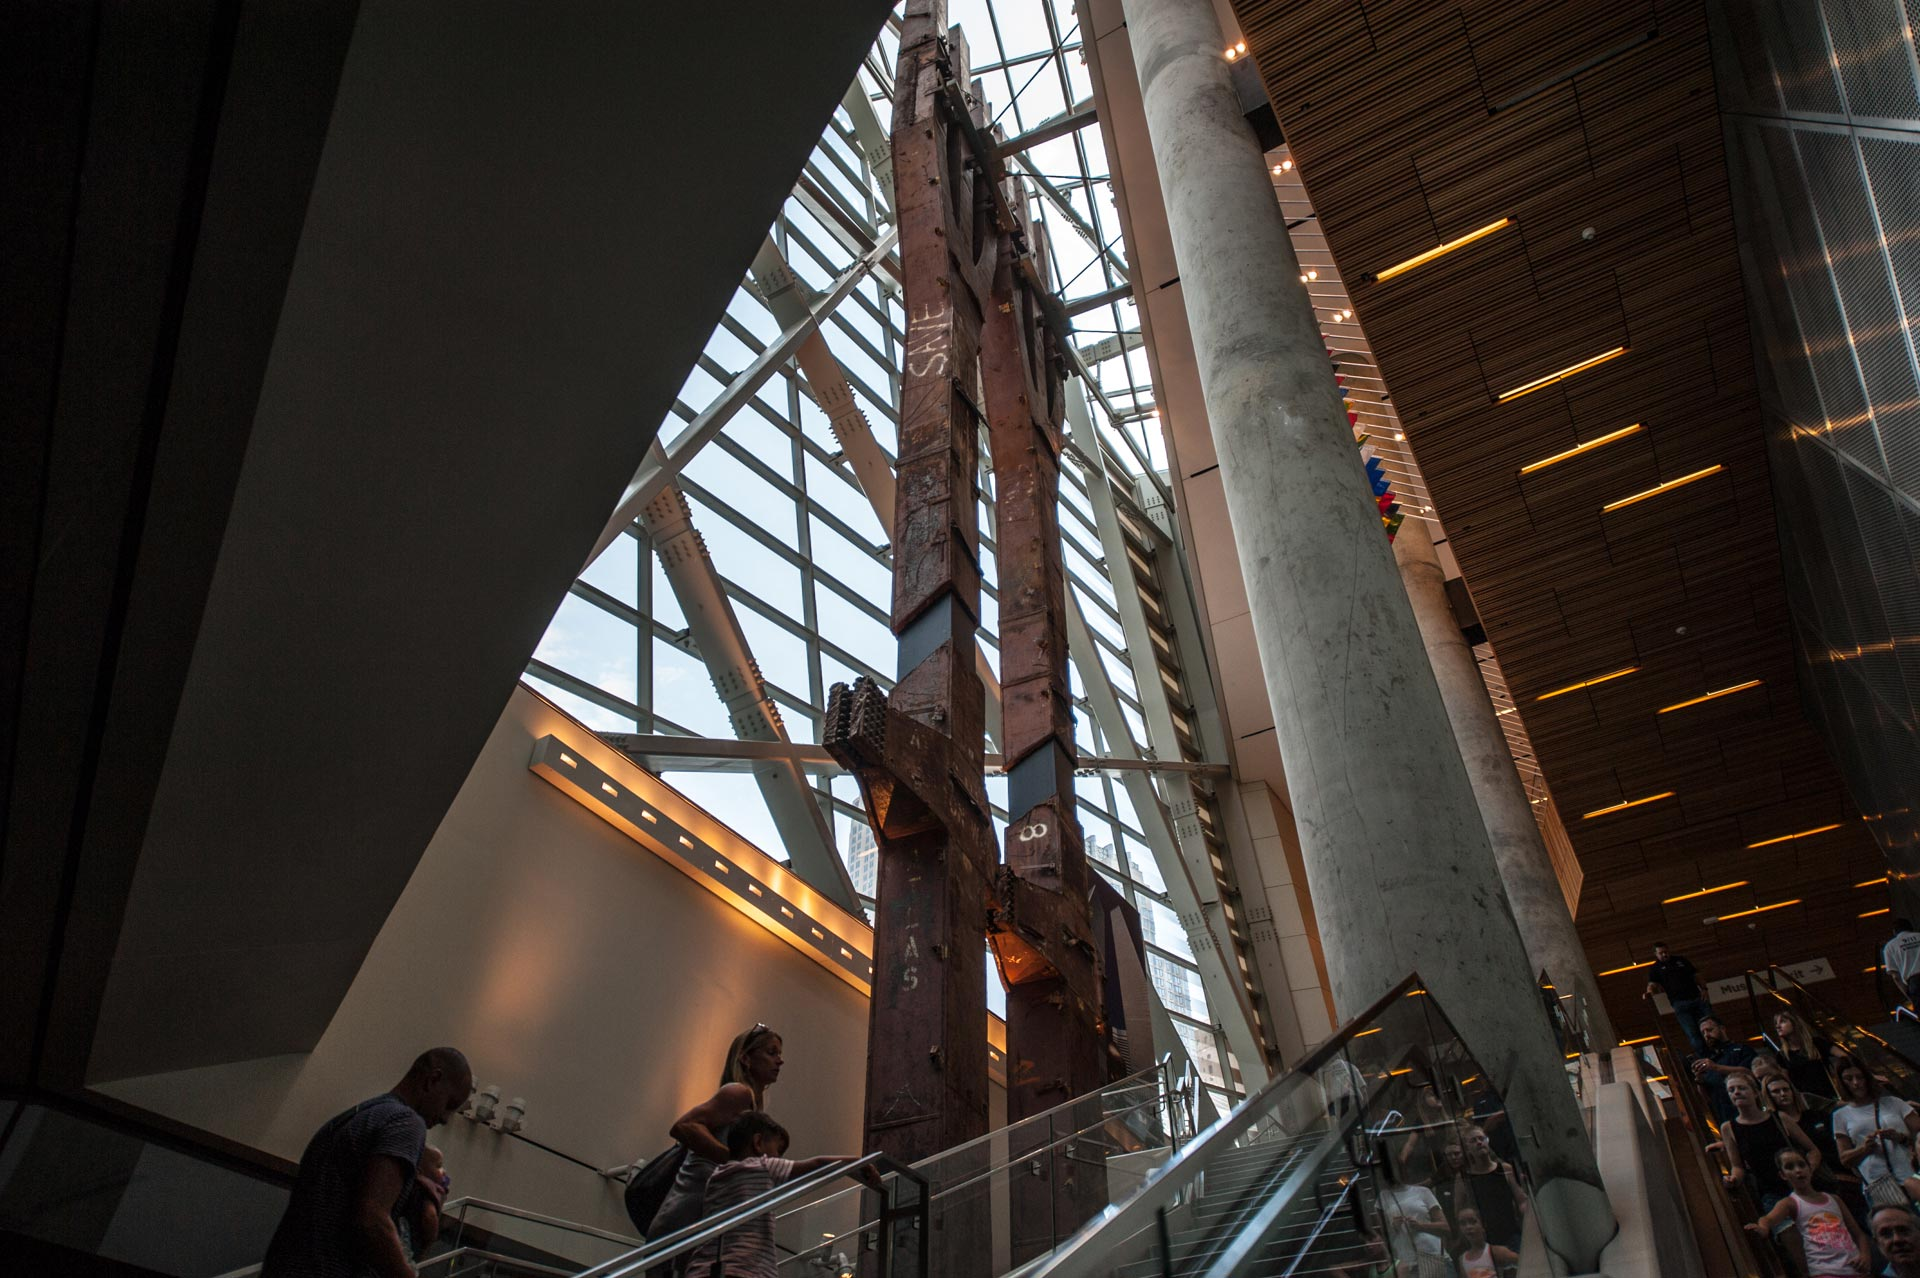 The Tridents at the National September 11 Memorial & Museum in New York, NY, USA